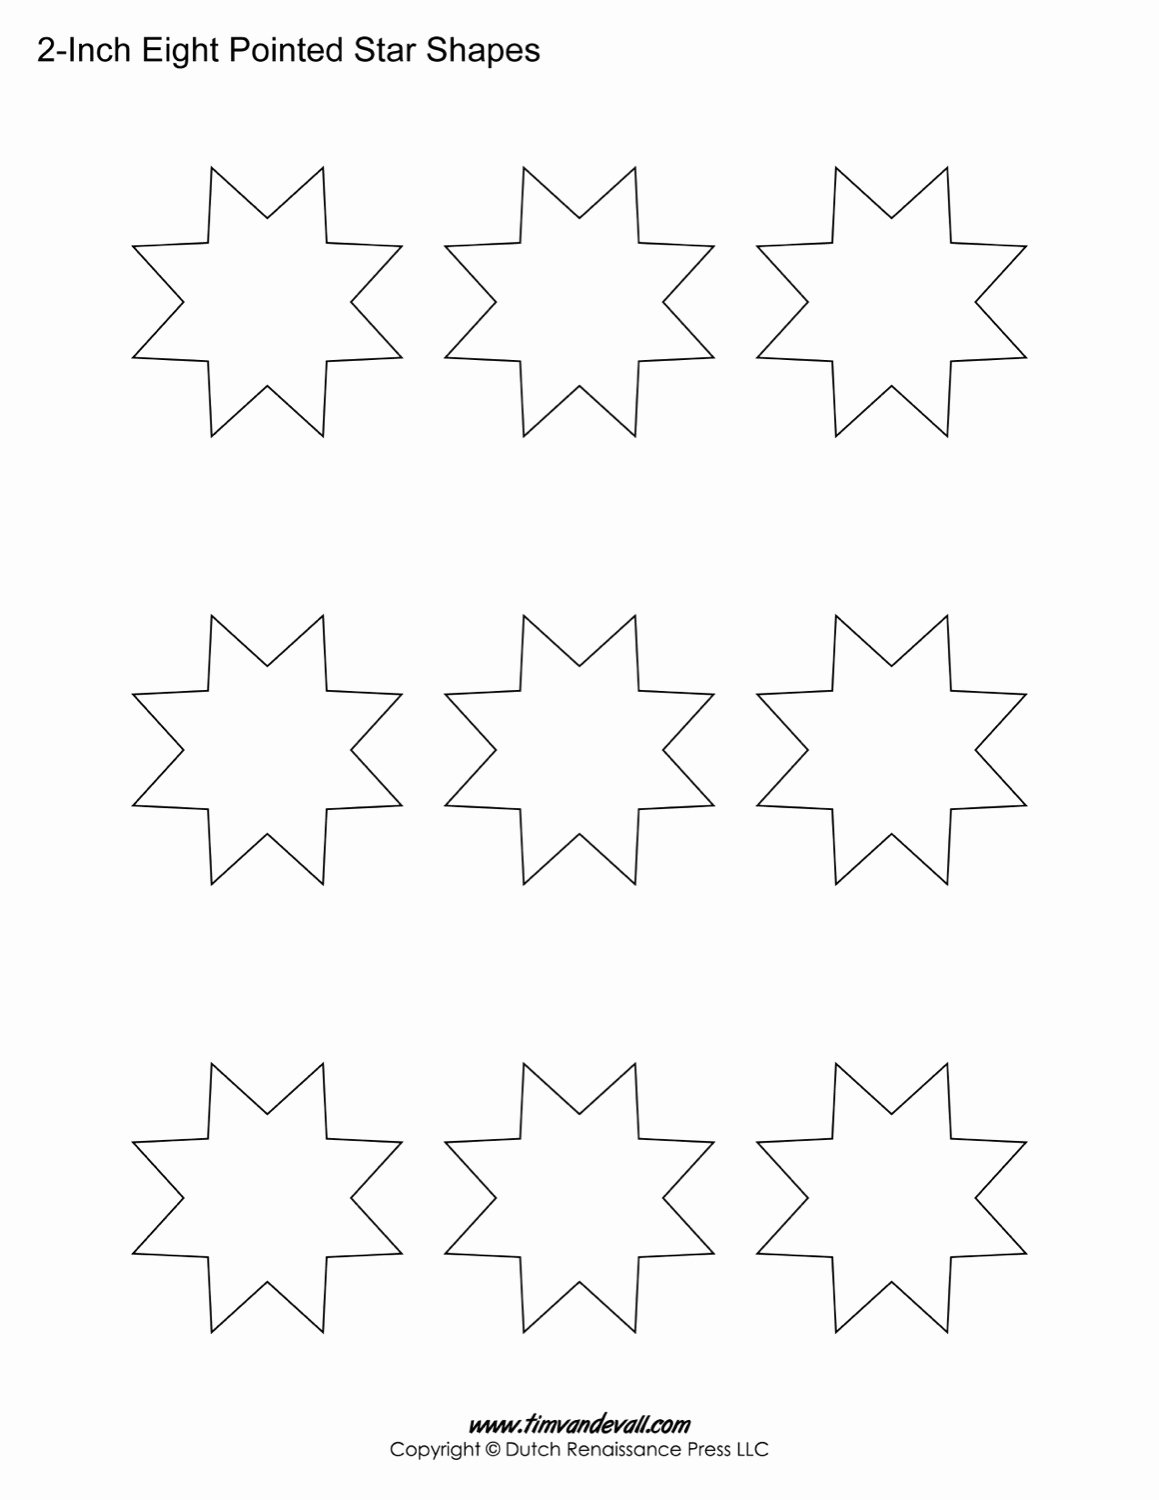 8 Point Star Template Printable Elegant Free Eight Pointed Star Shapes